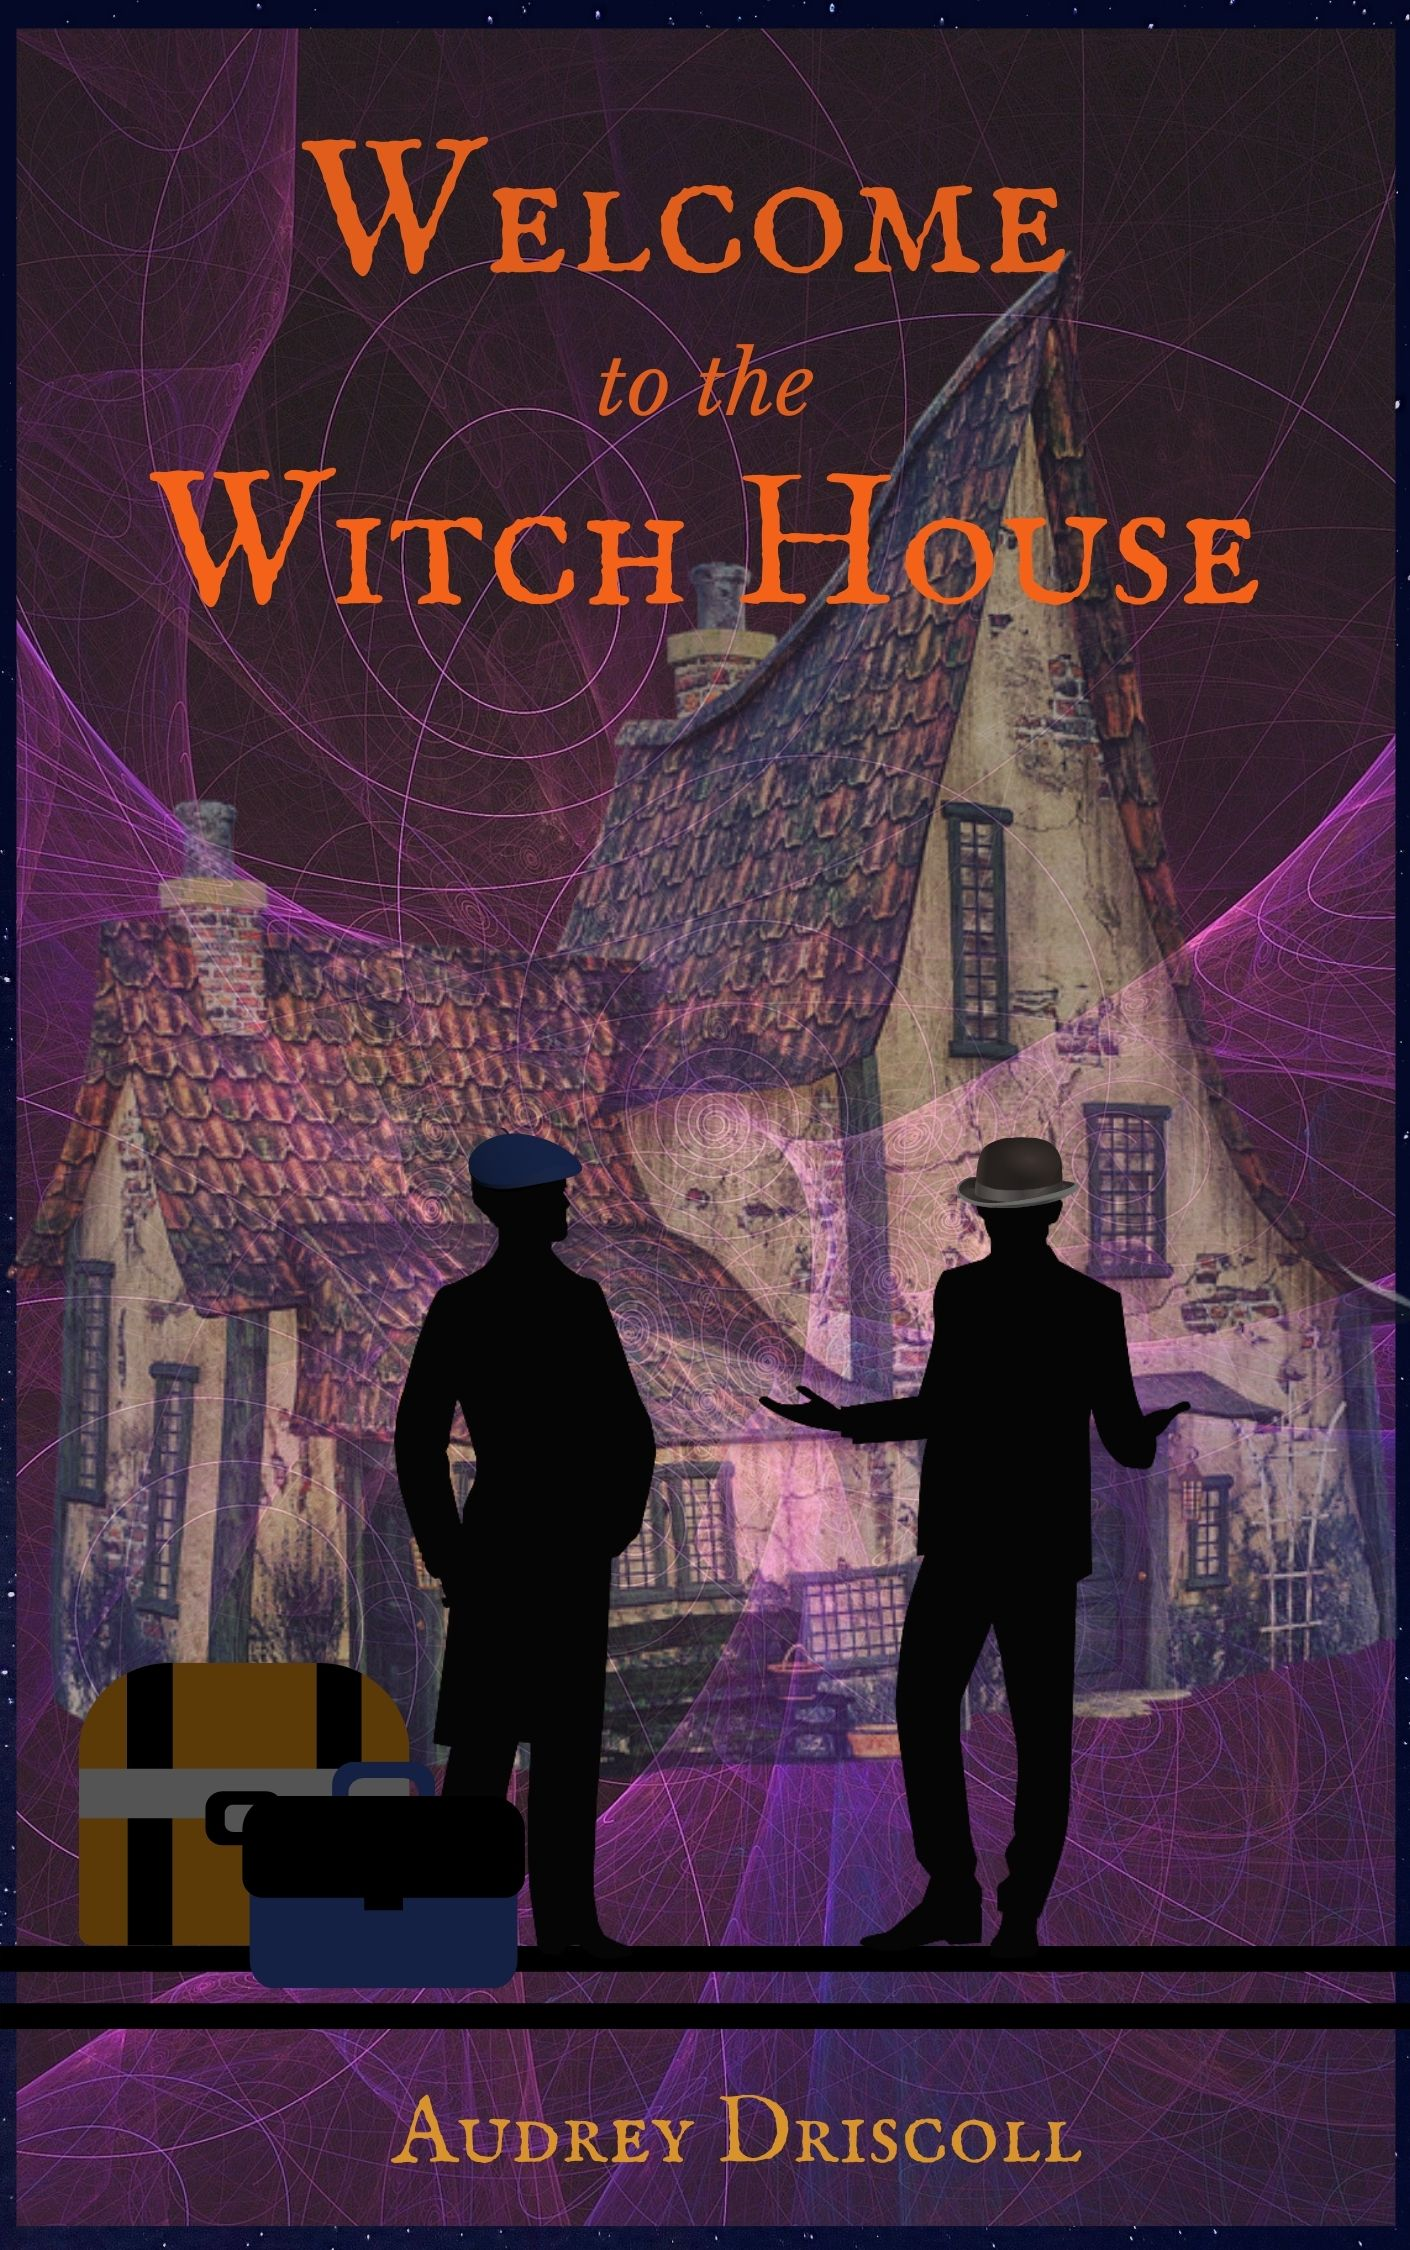 Image #2 for Welcome to the Witch House story